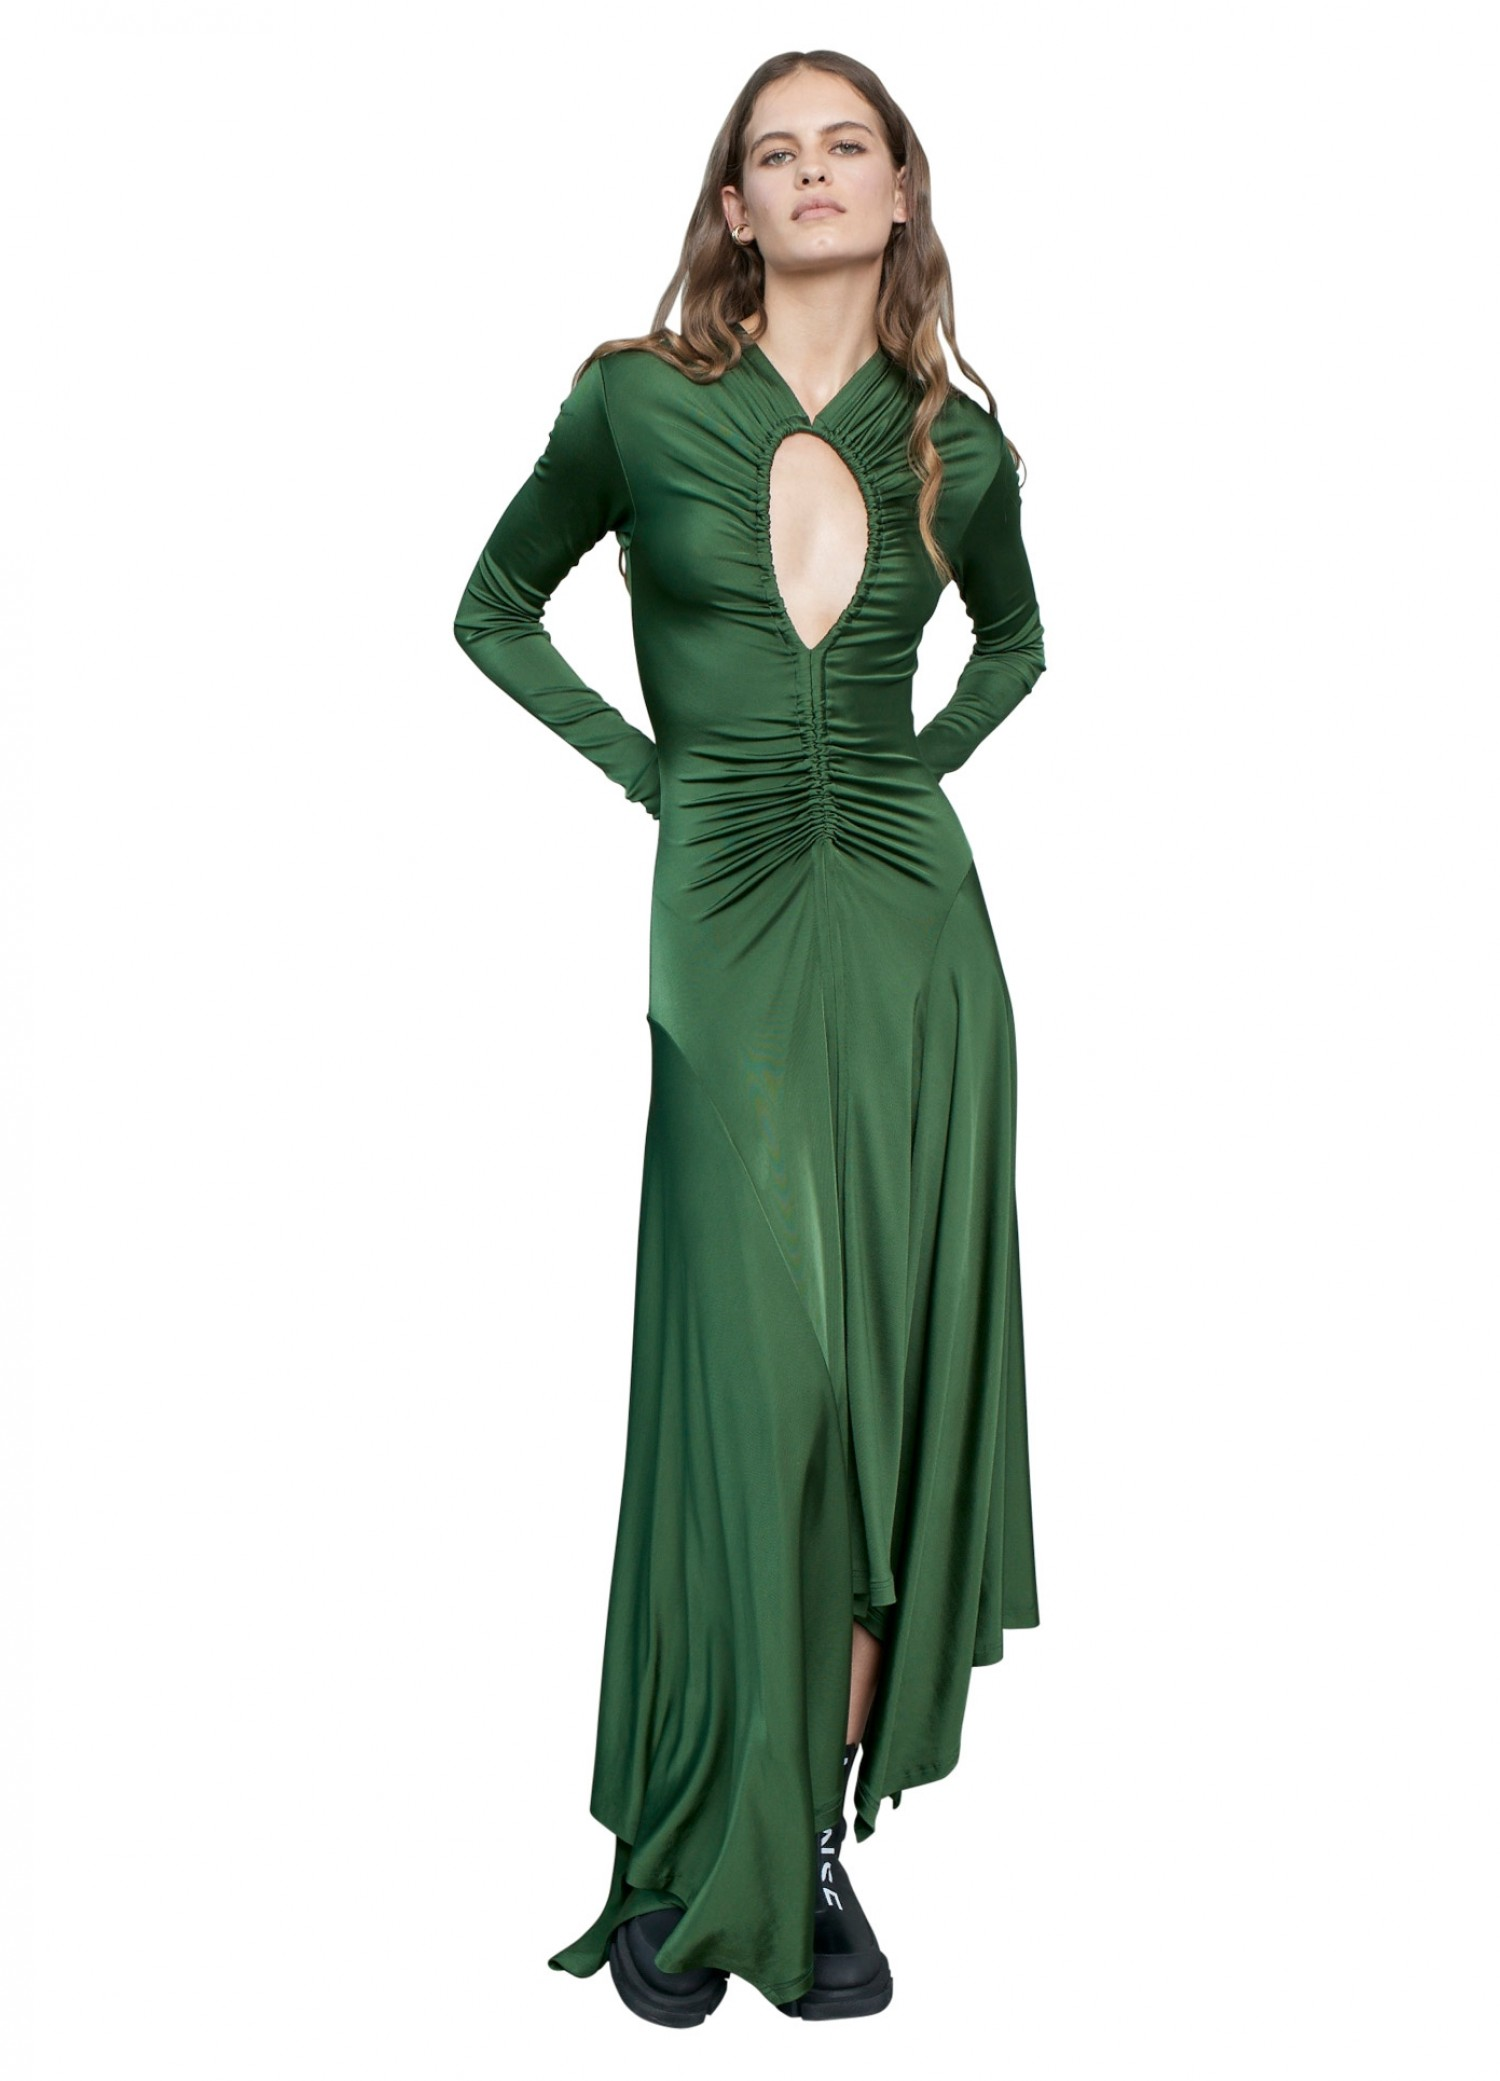 MONSE Ruched Teardrop Jersey Dress on Model Full Front View